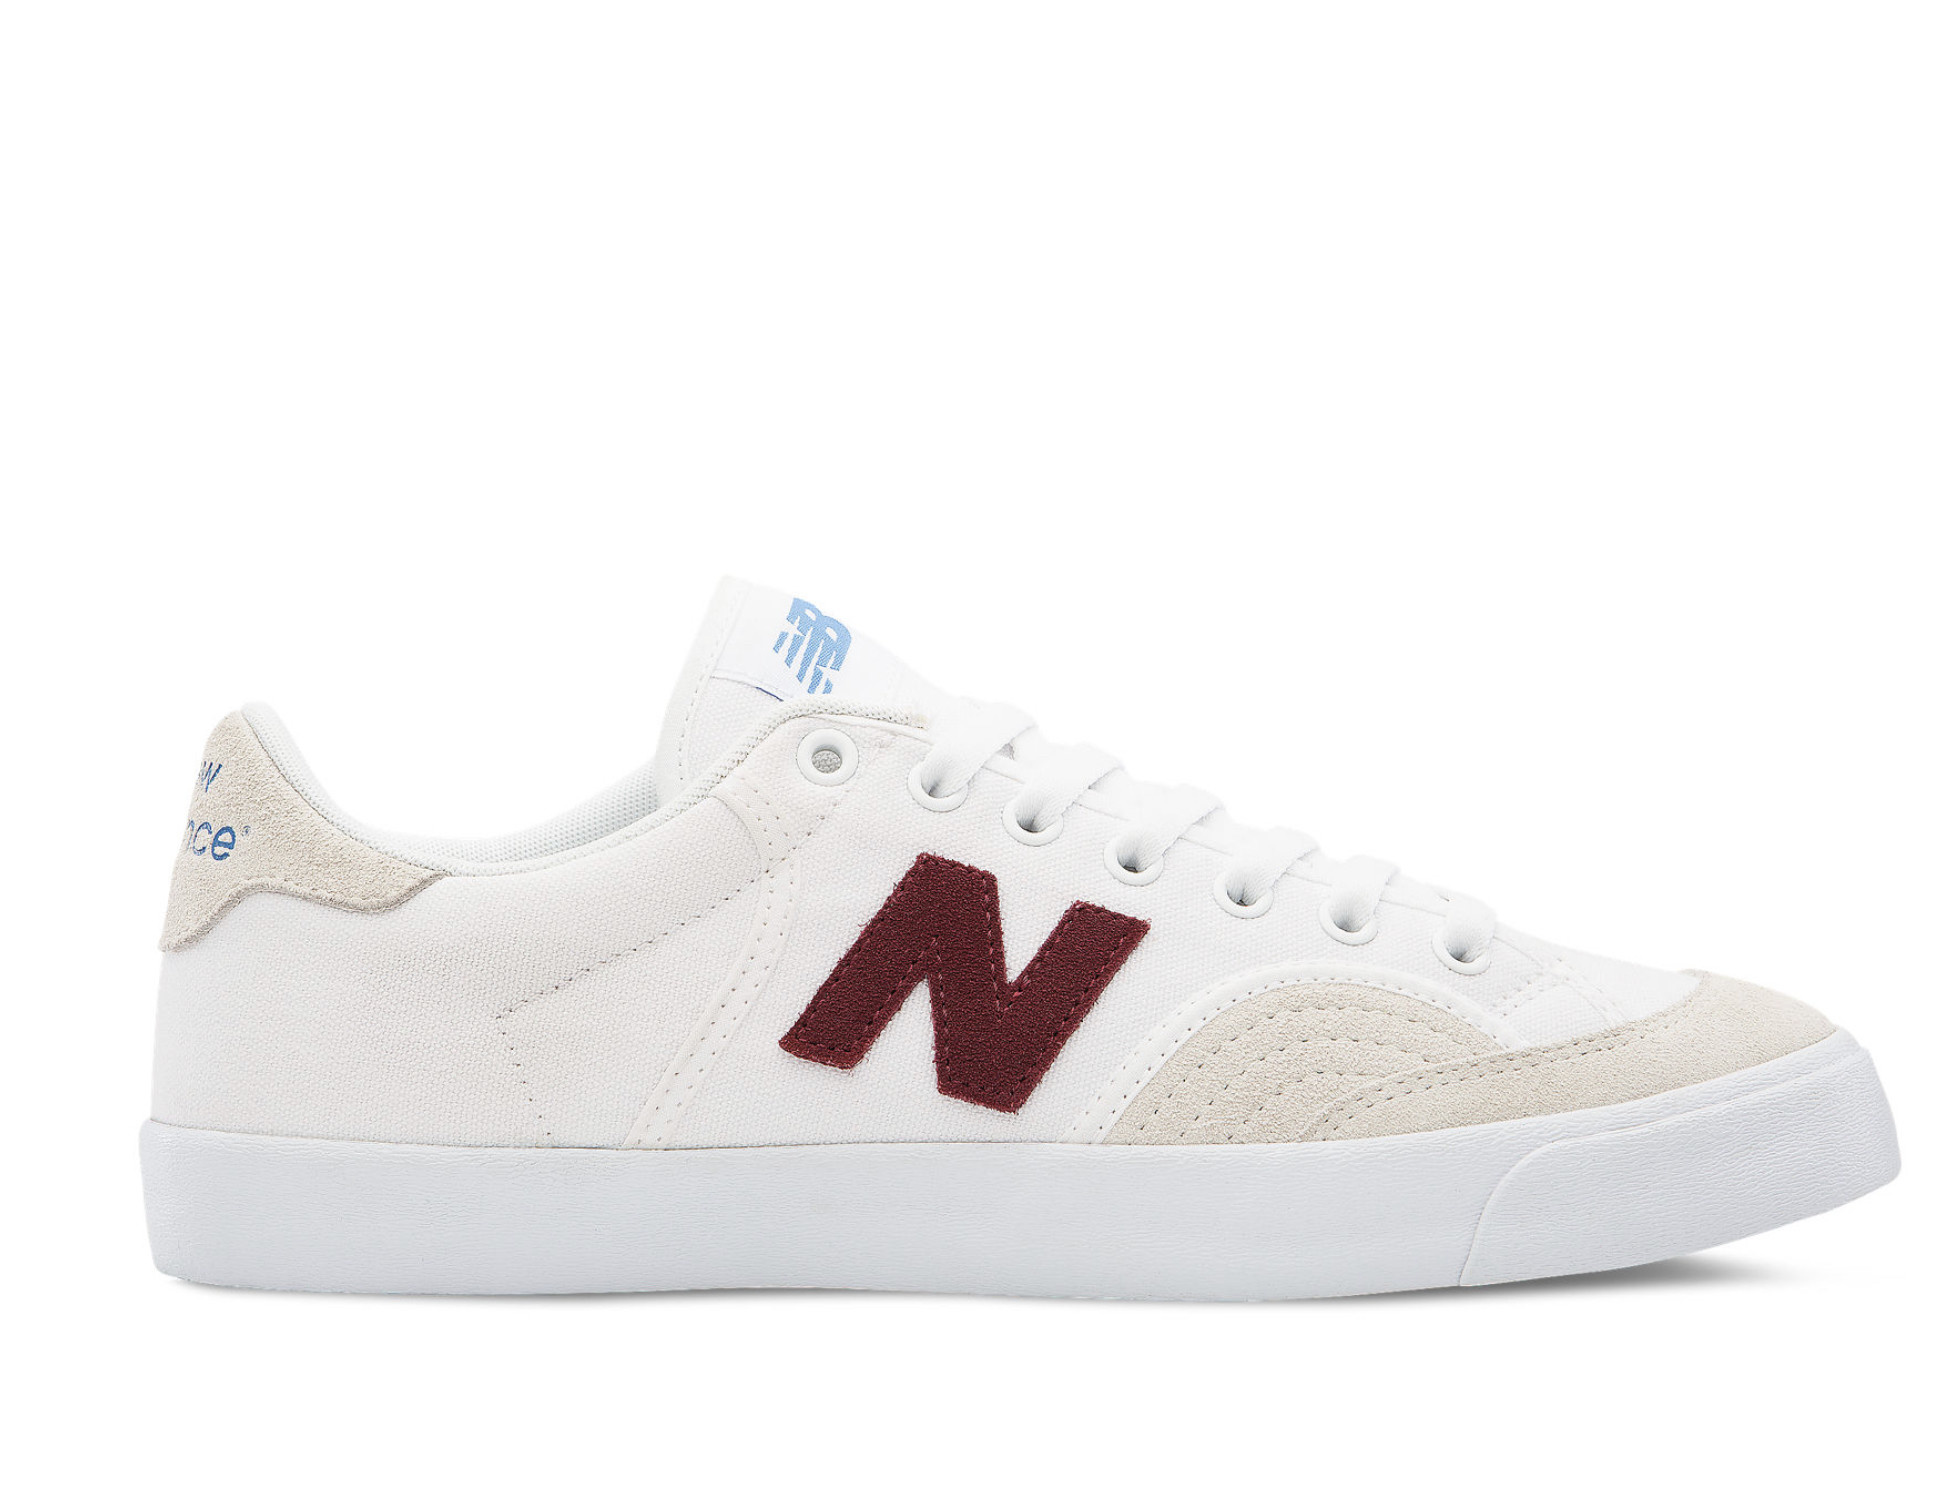 New Balance New Balance - 212 Cream/White/Maroon